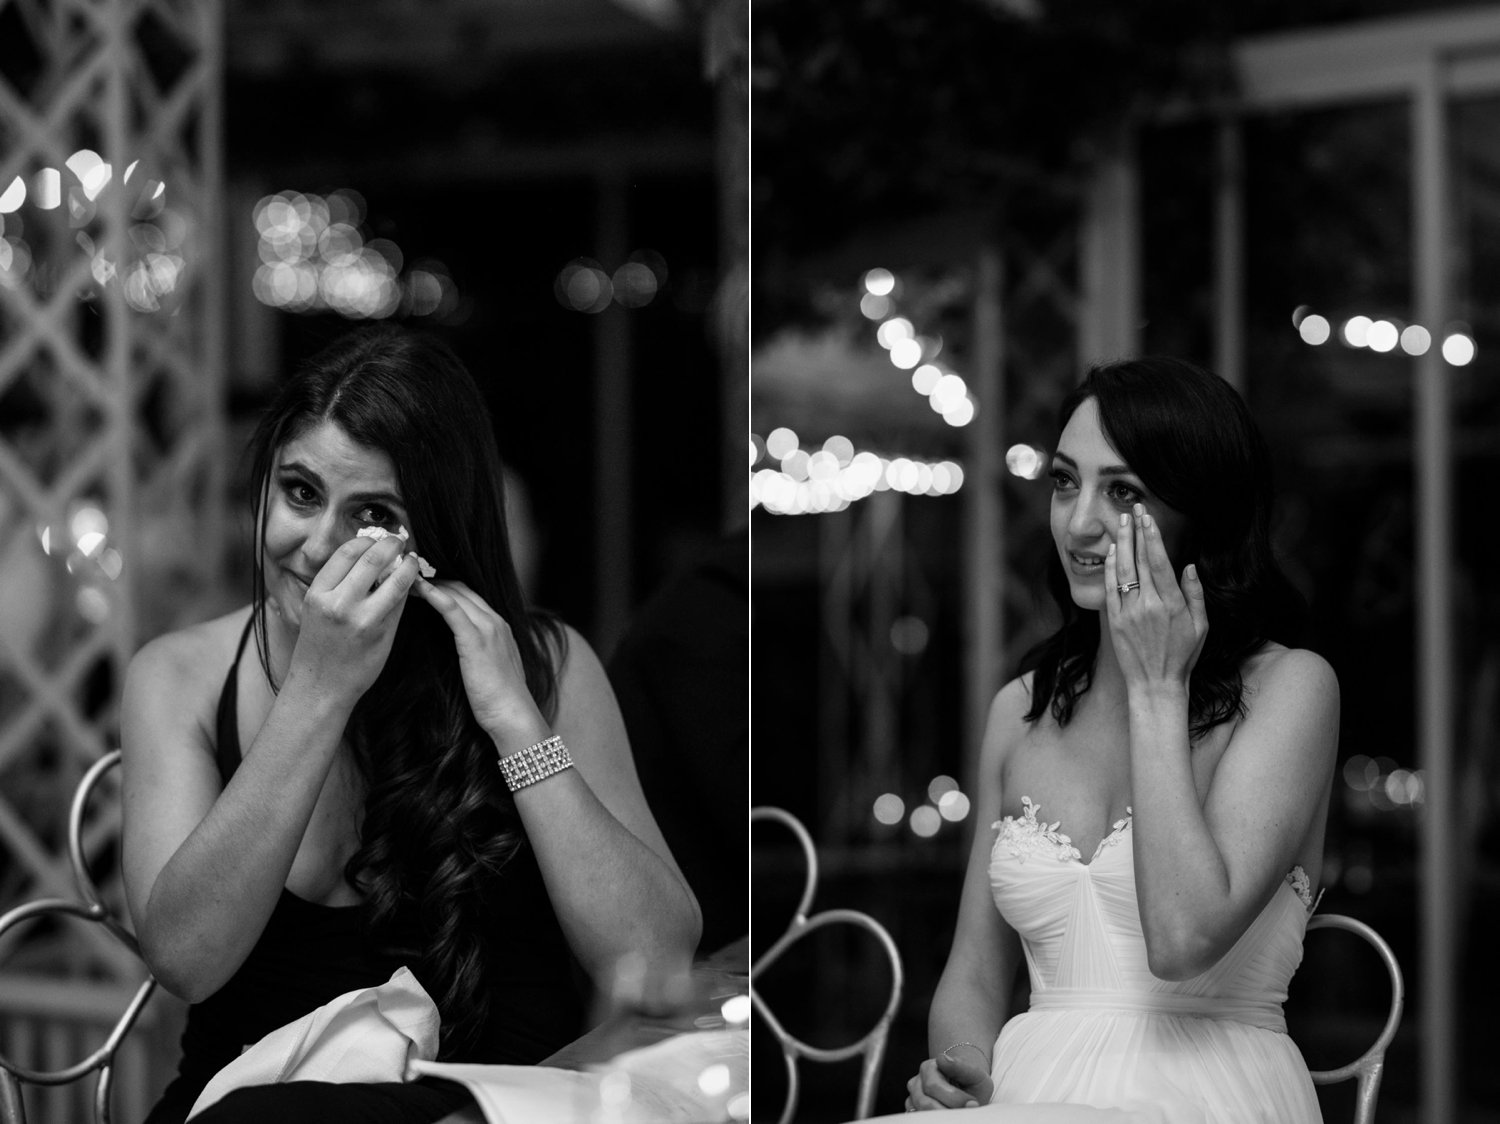 Emotional bride and sister listening to groom's wedding speech